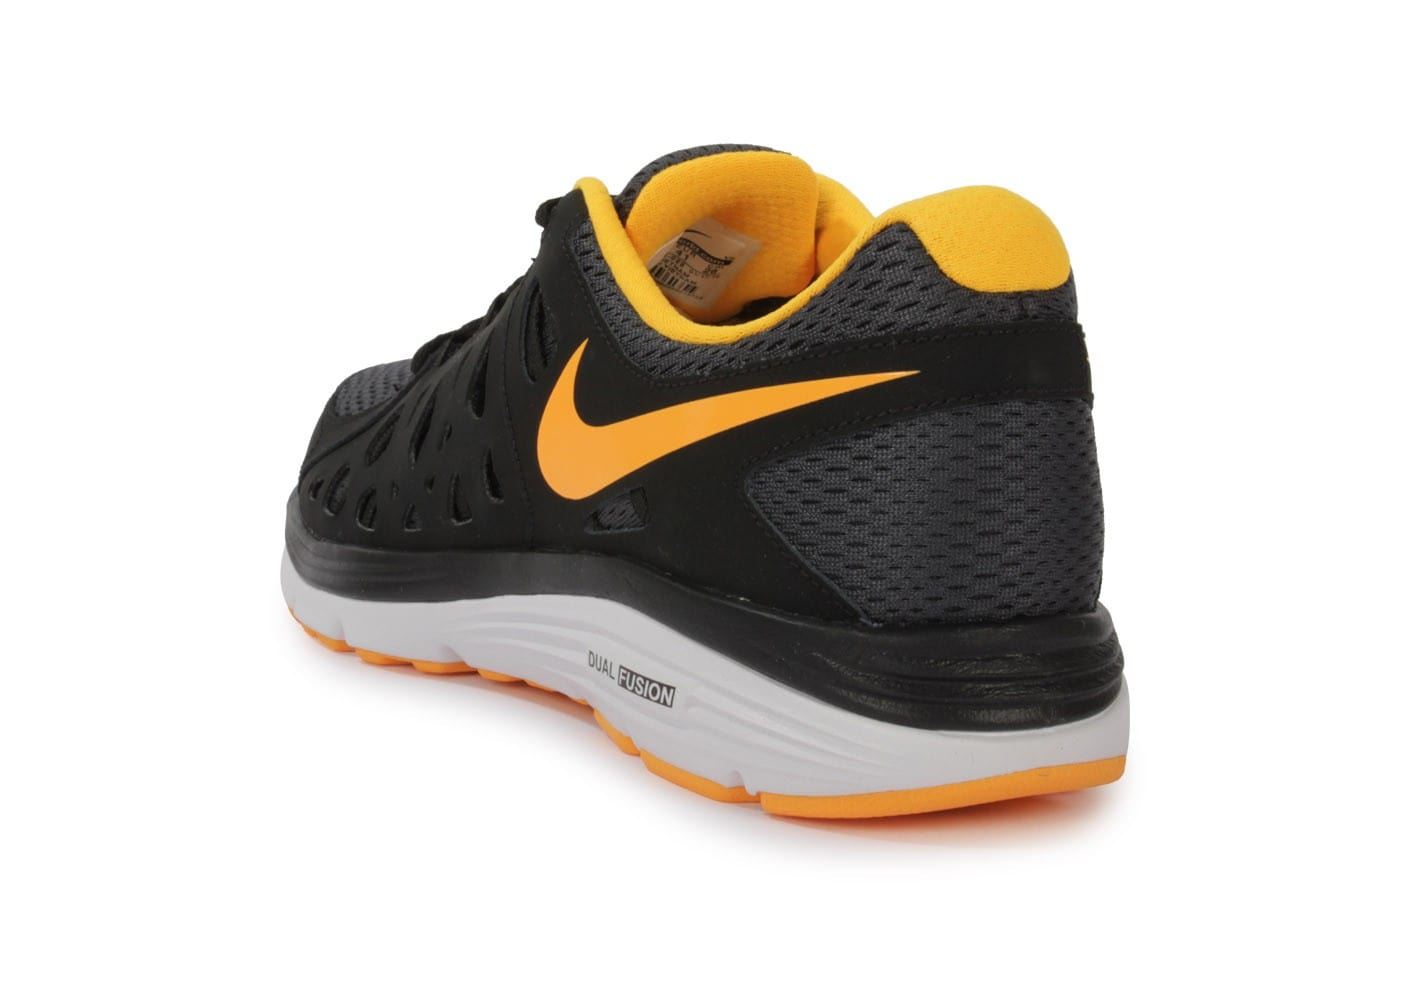 low priced 65ece ac668 ... Chaussures Nike Dual Fusion Anthracite Jaune vue arrière ...